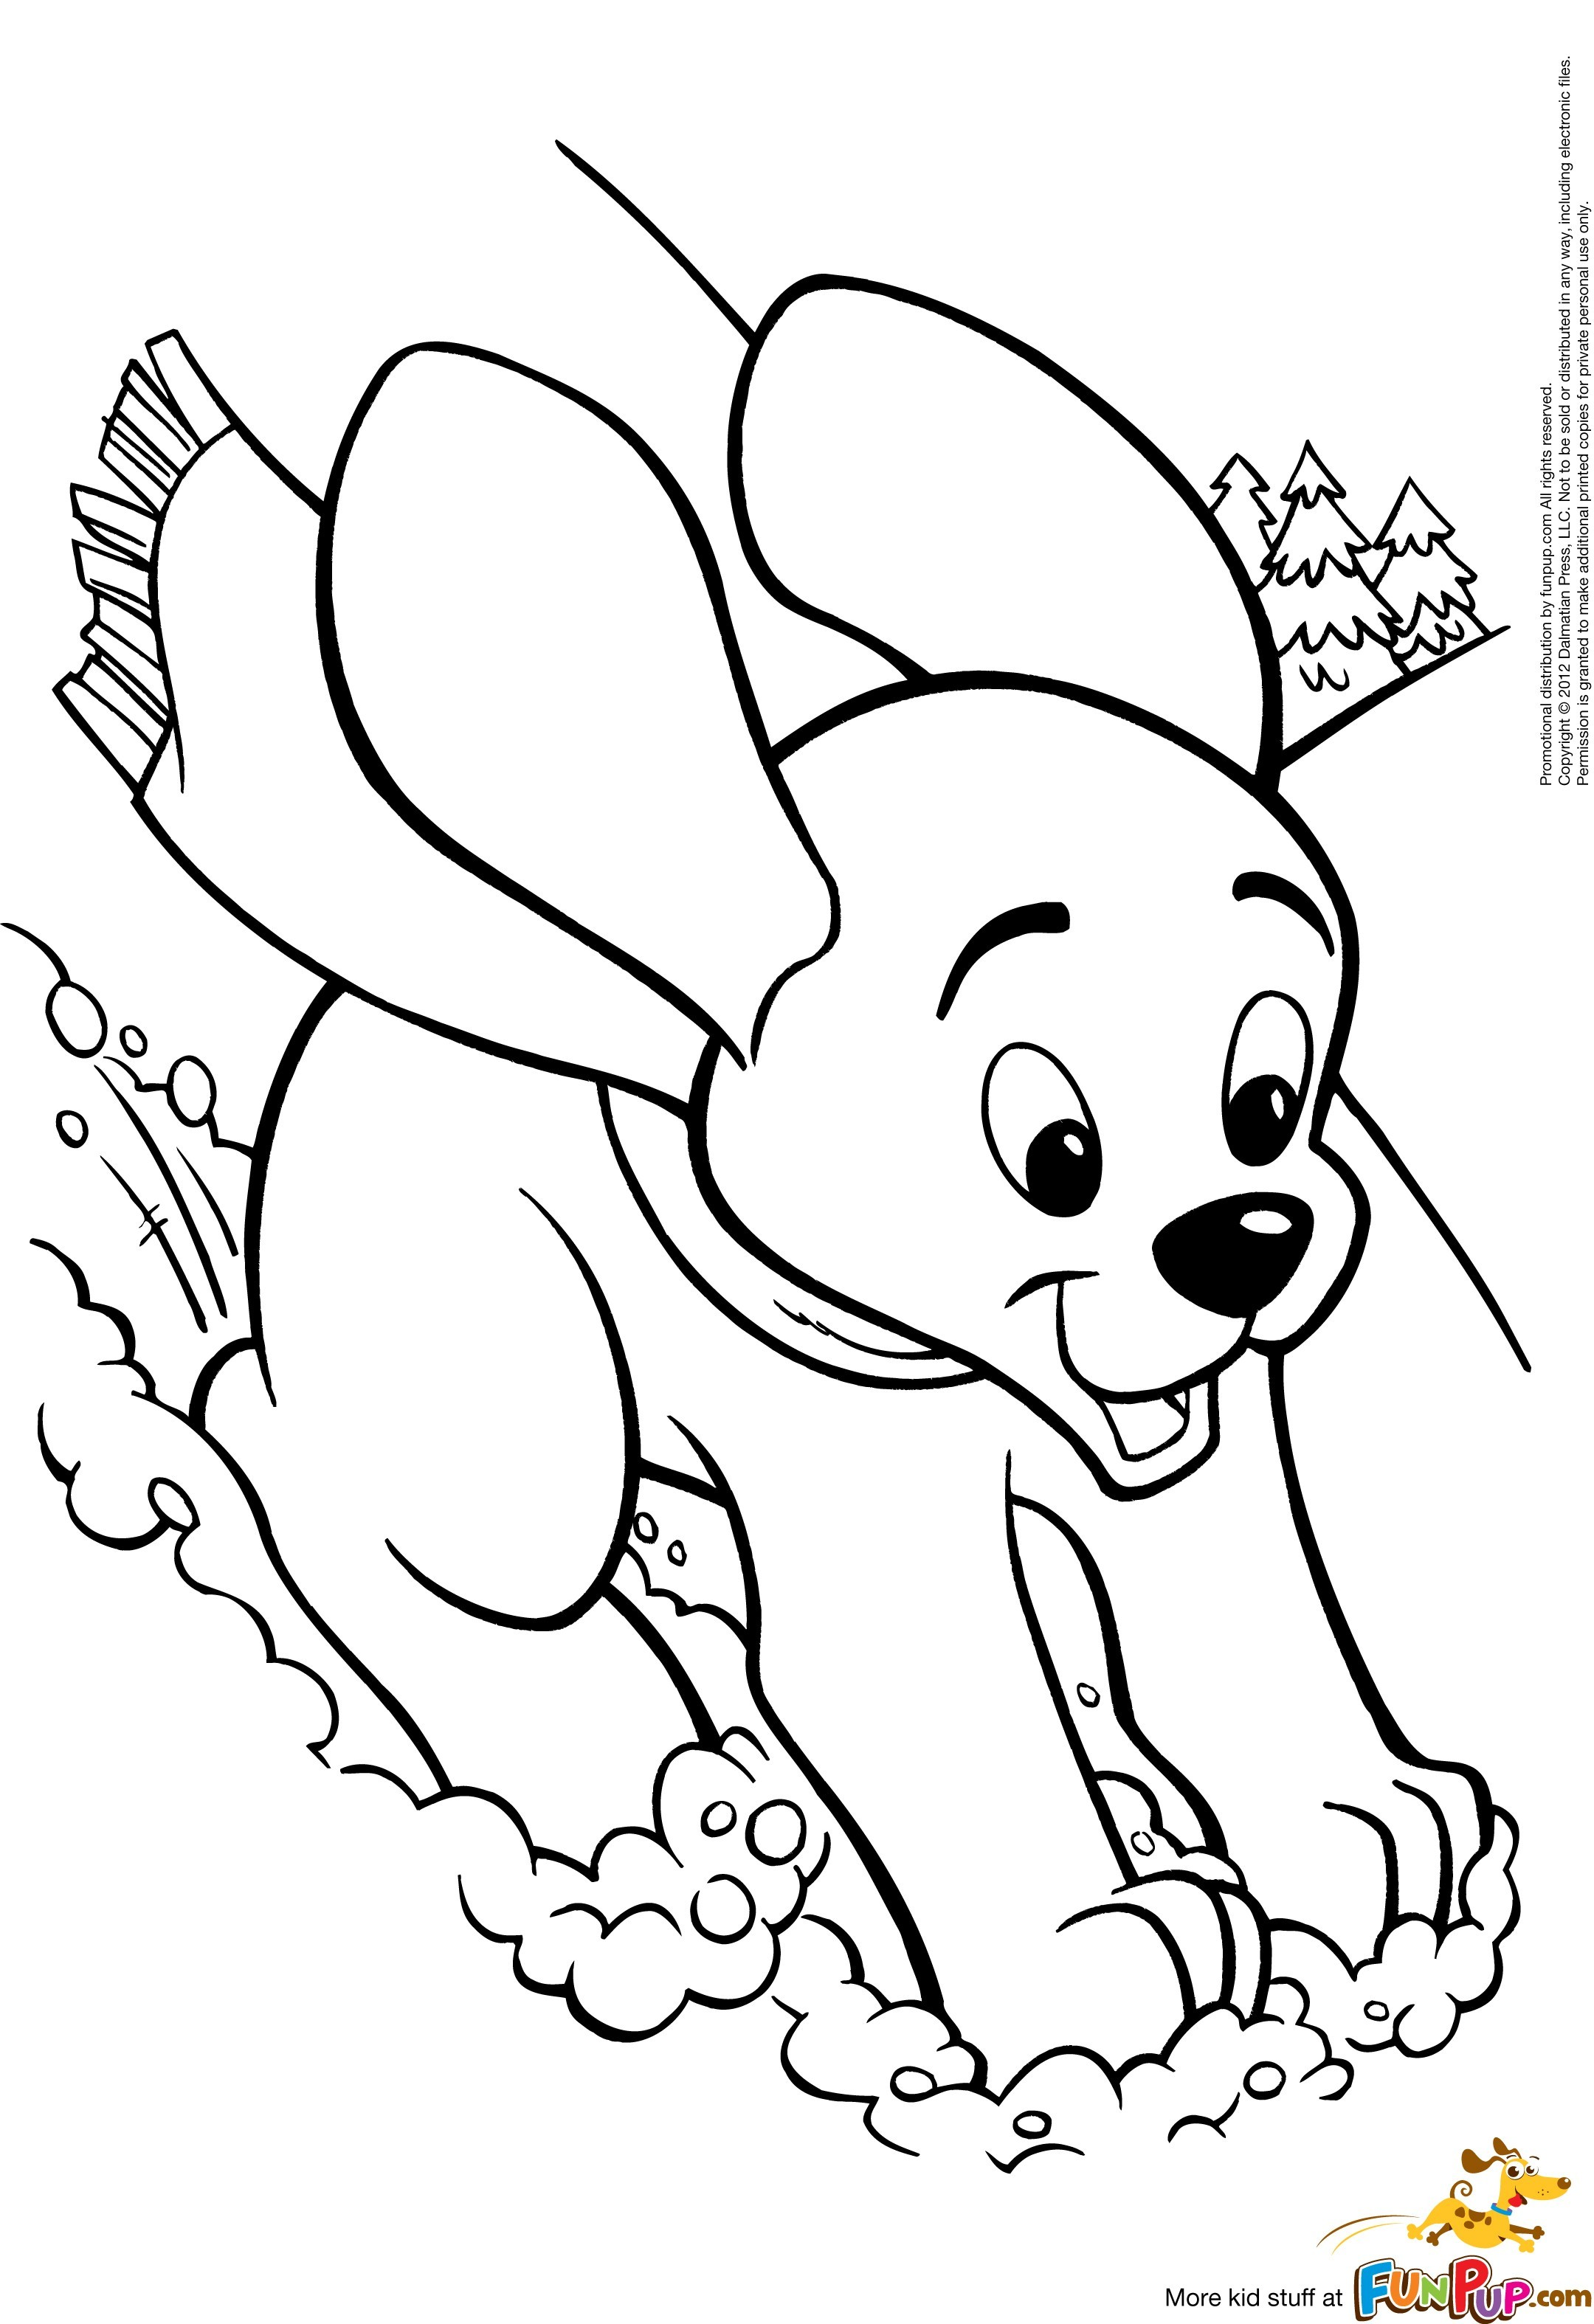 Cute Dog Coloring Pages For Kids at GetDrawings | Free ...